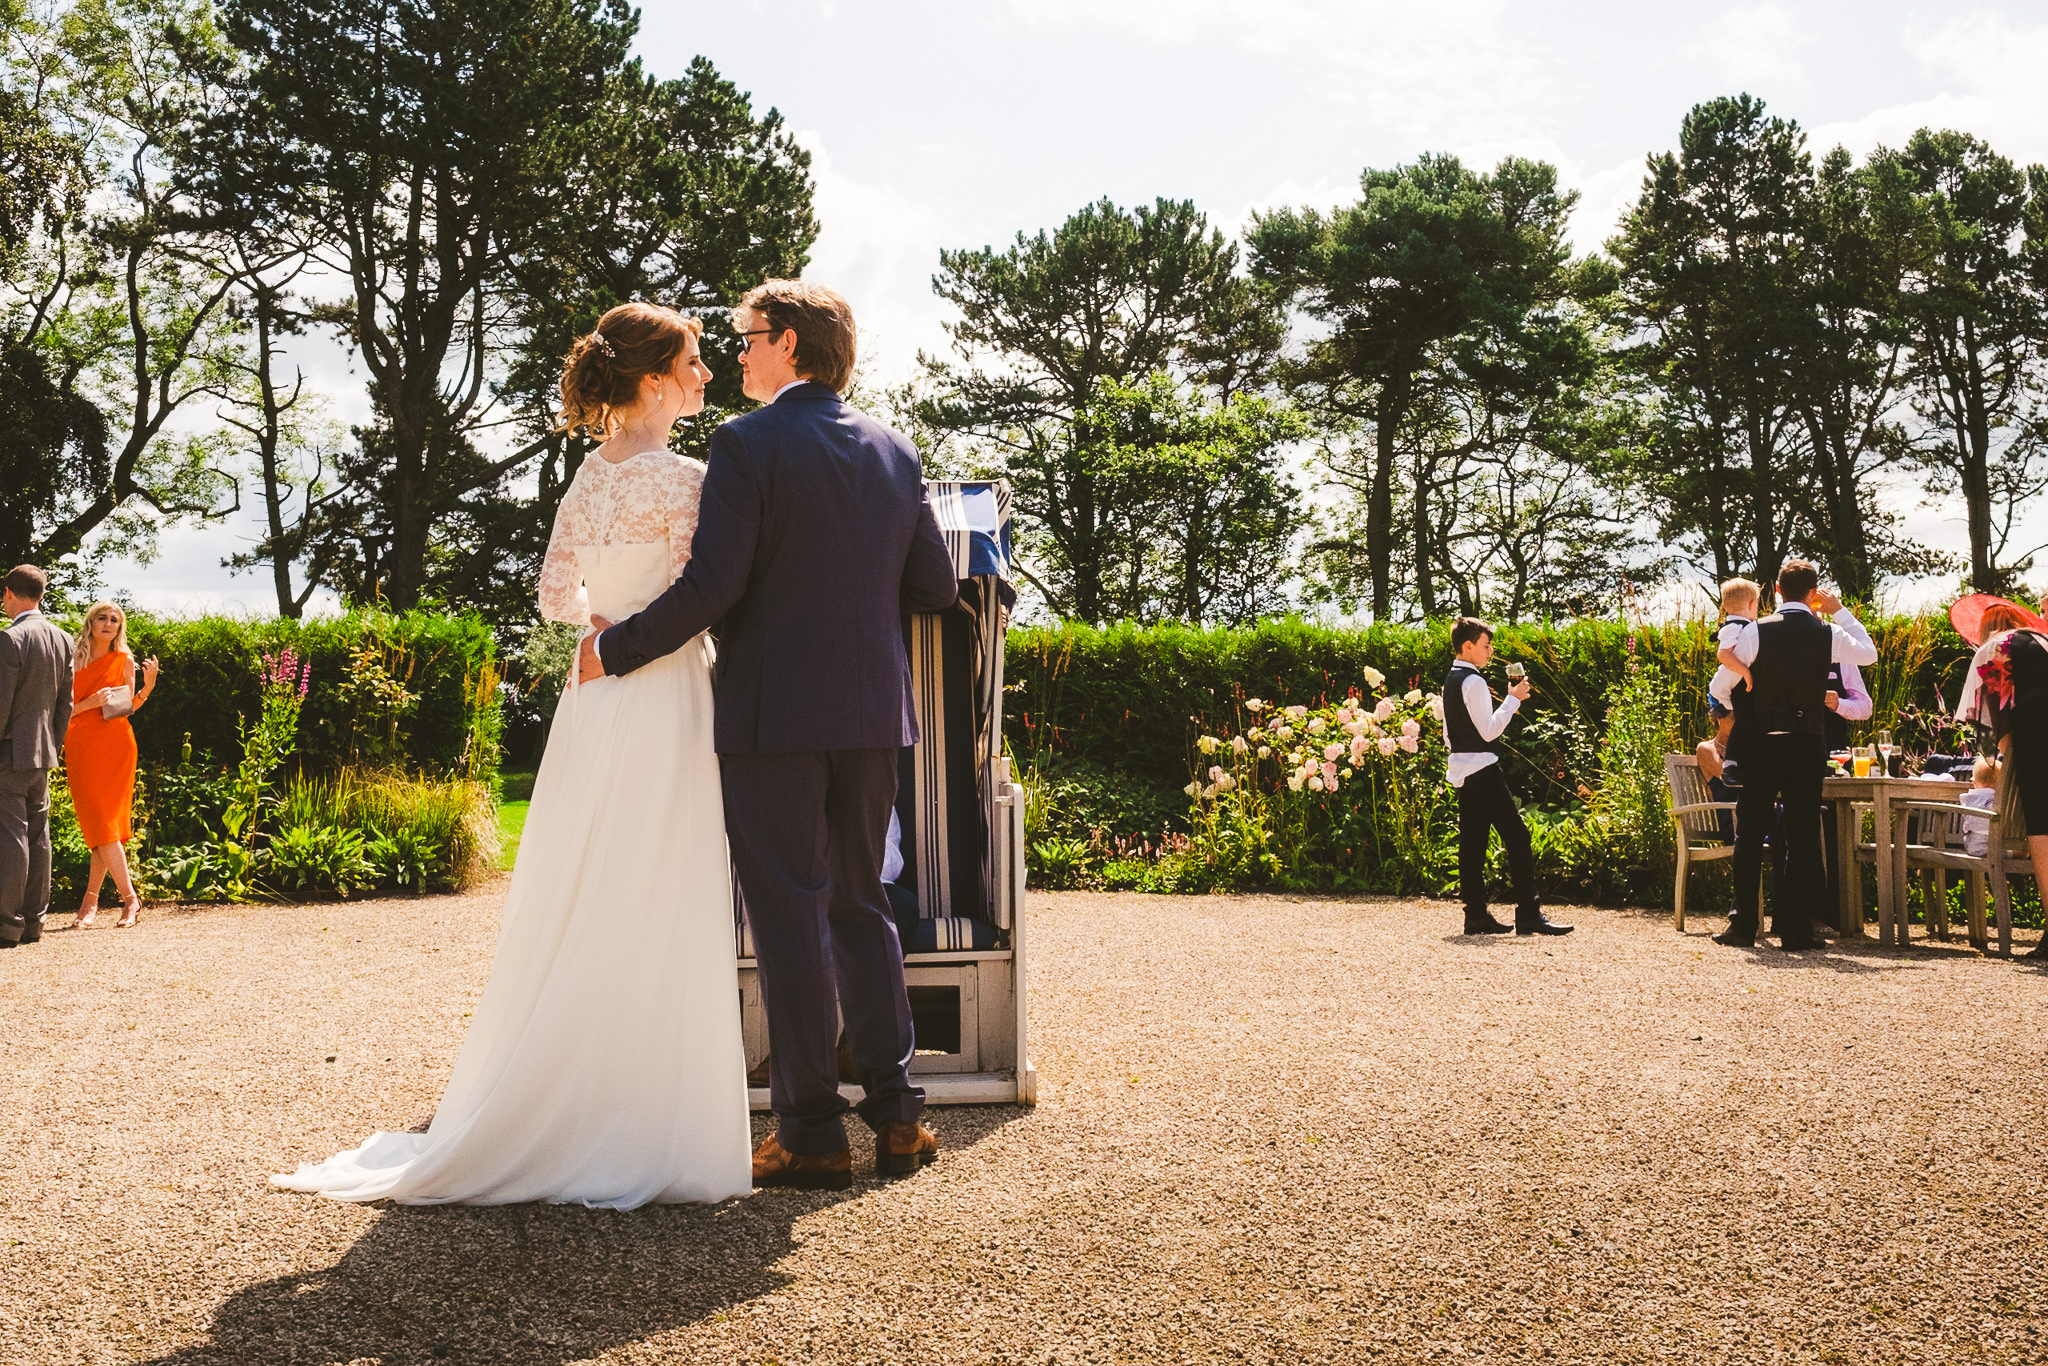 The bride and groom cuddle in the courtyard of Newton Hall